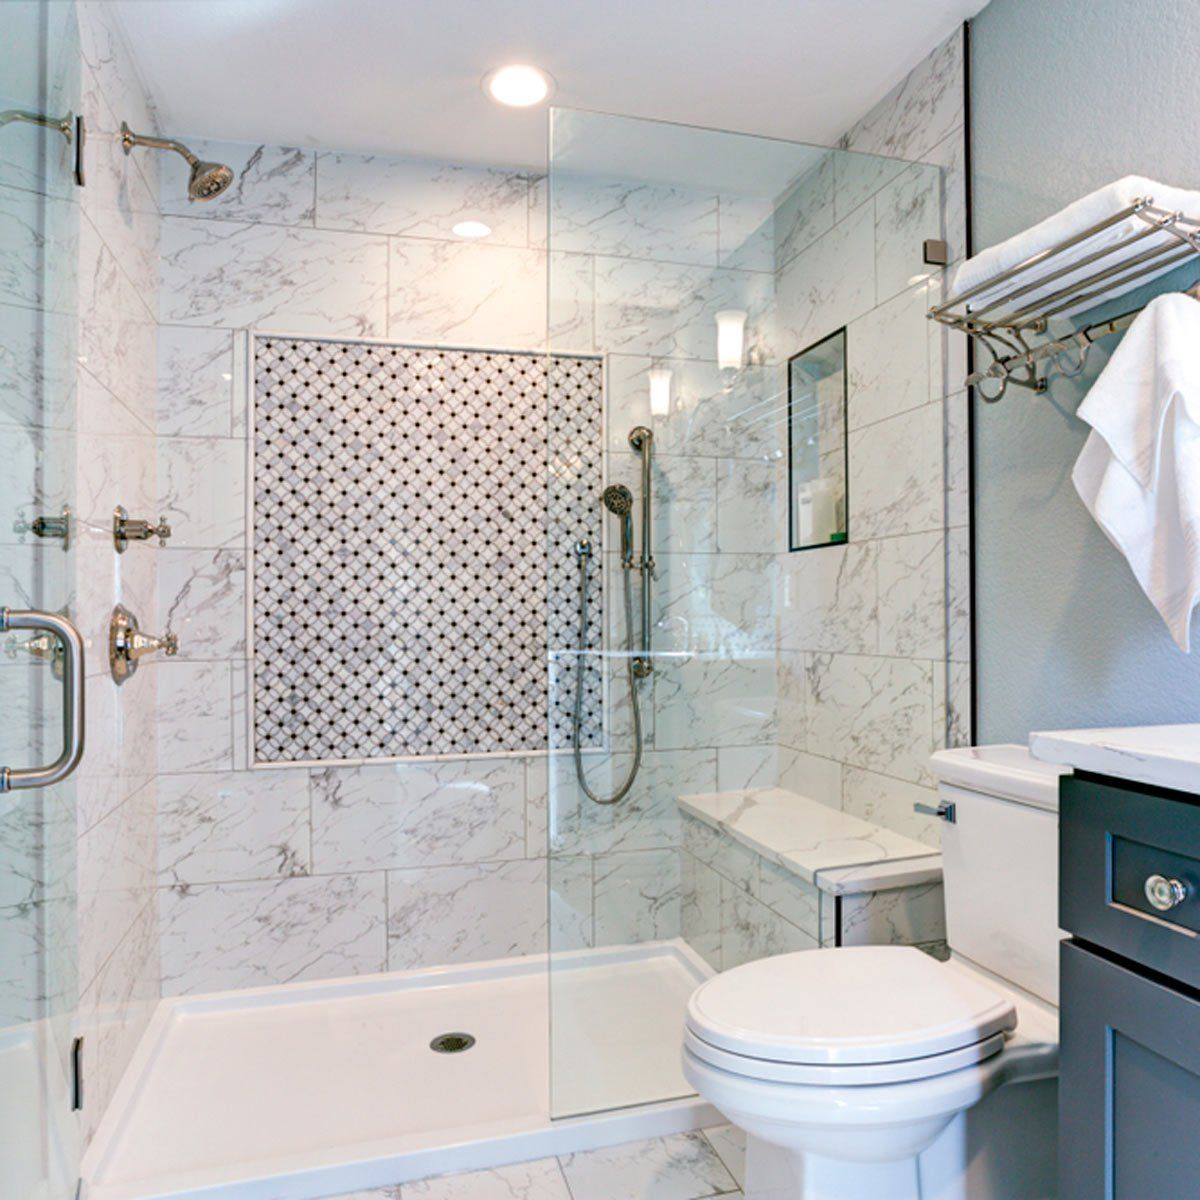 15 Remodeling Ideas That Will Pay Off In 2019 Bathrooms Remodel Bathroom Design Bathroom Renovations